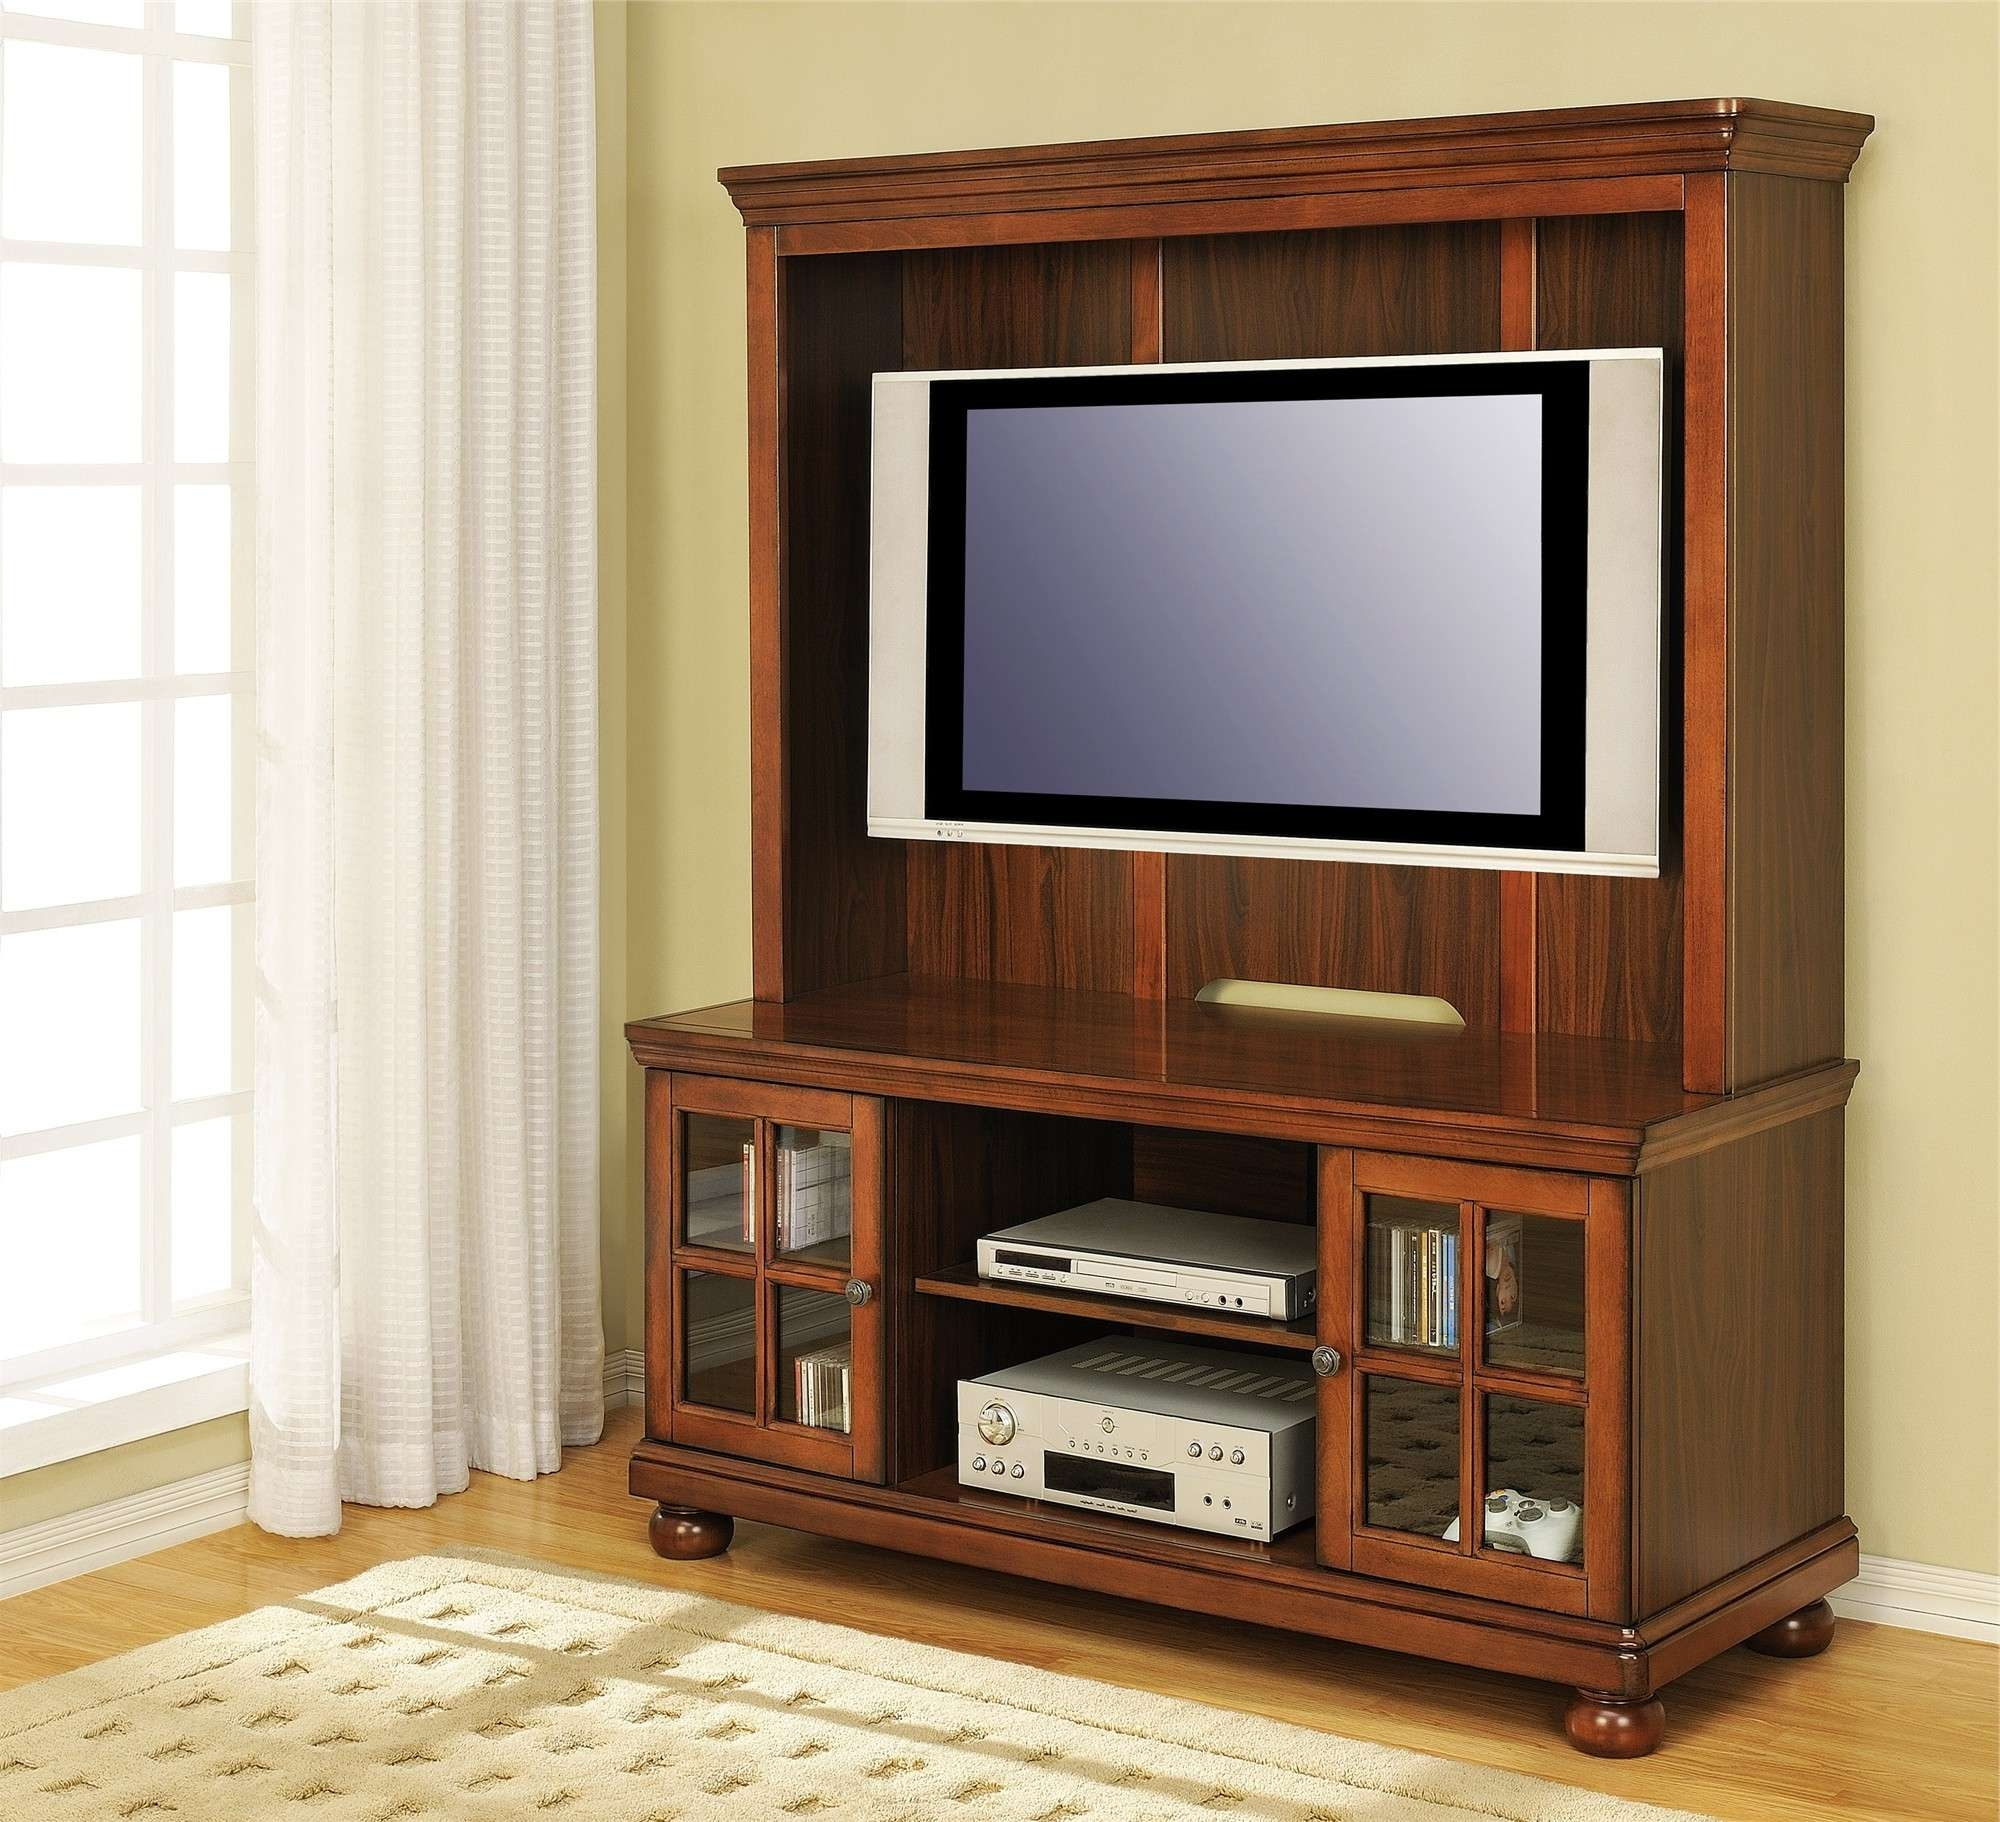 Wood Tv Cabinets With Glass Doors | Cabinet Doors And File Cabinets For Wooden Tv Cabinets With Glass Doors (View 16 of 20)